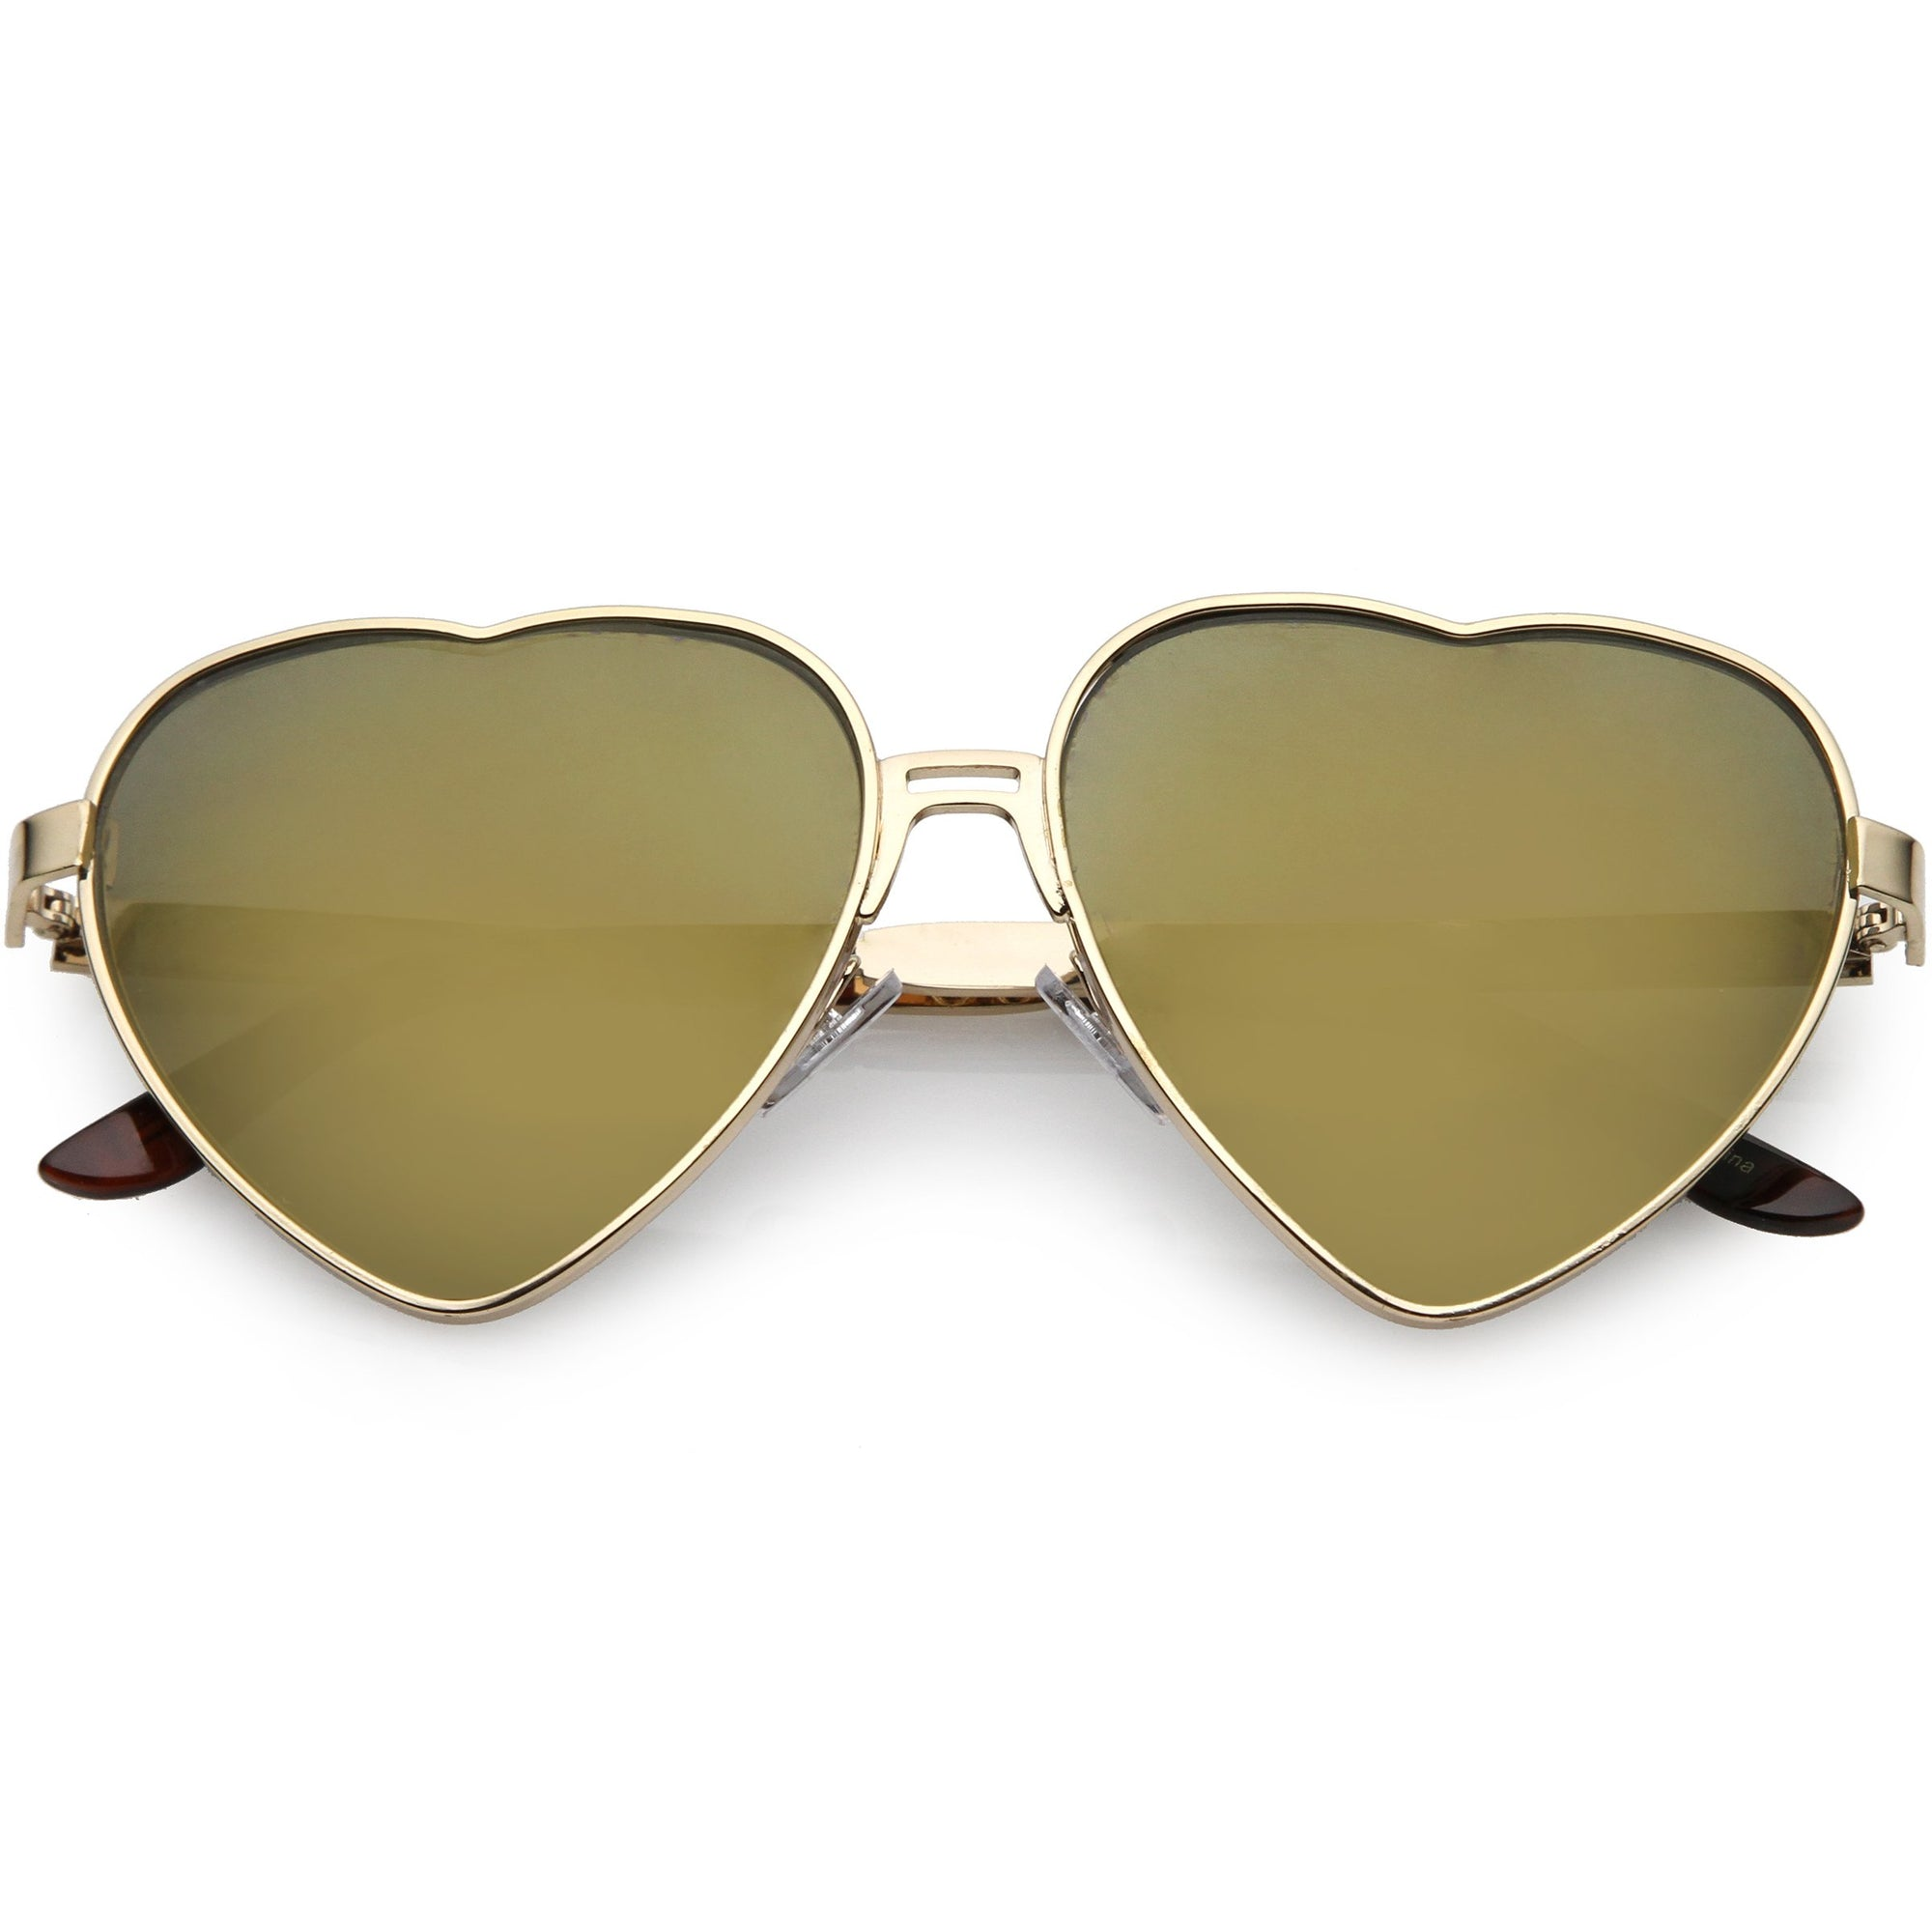 93c4595fba5 Women s Oversize Metal Heart Shaped Mirrored Lens Sunglasses - zeroUV